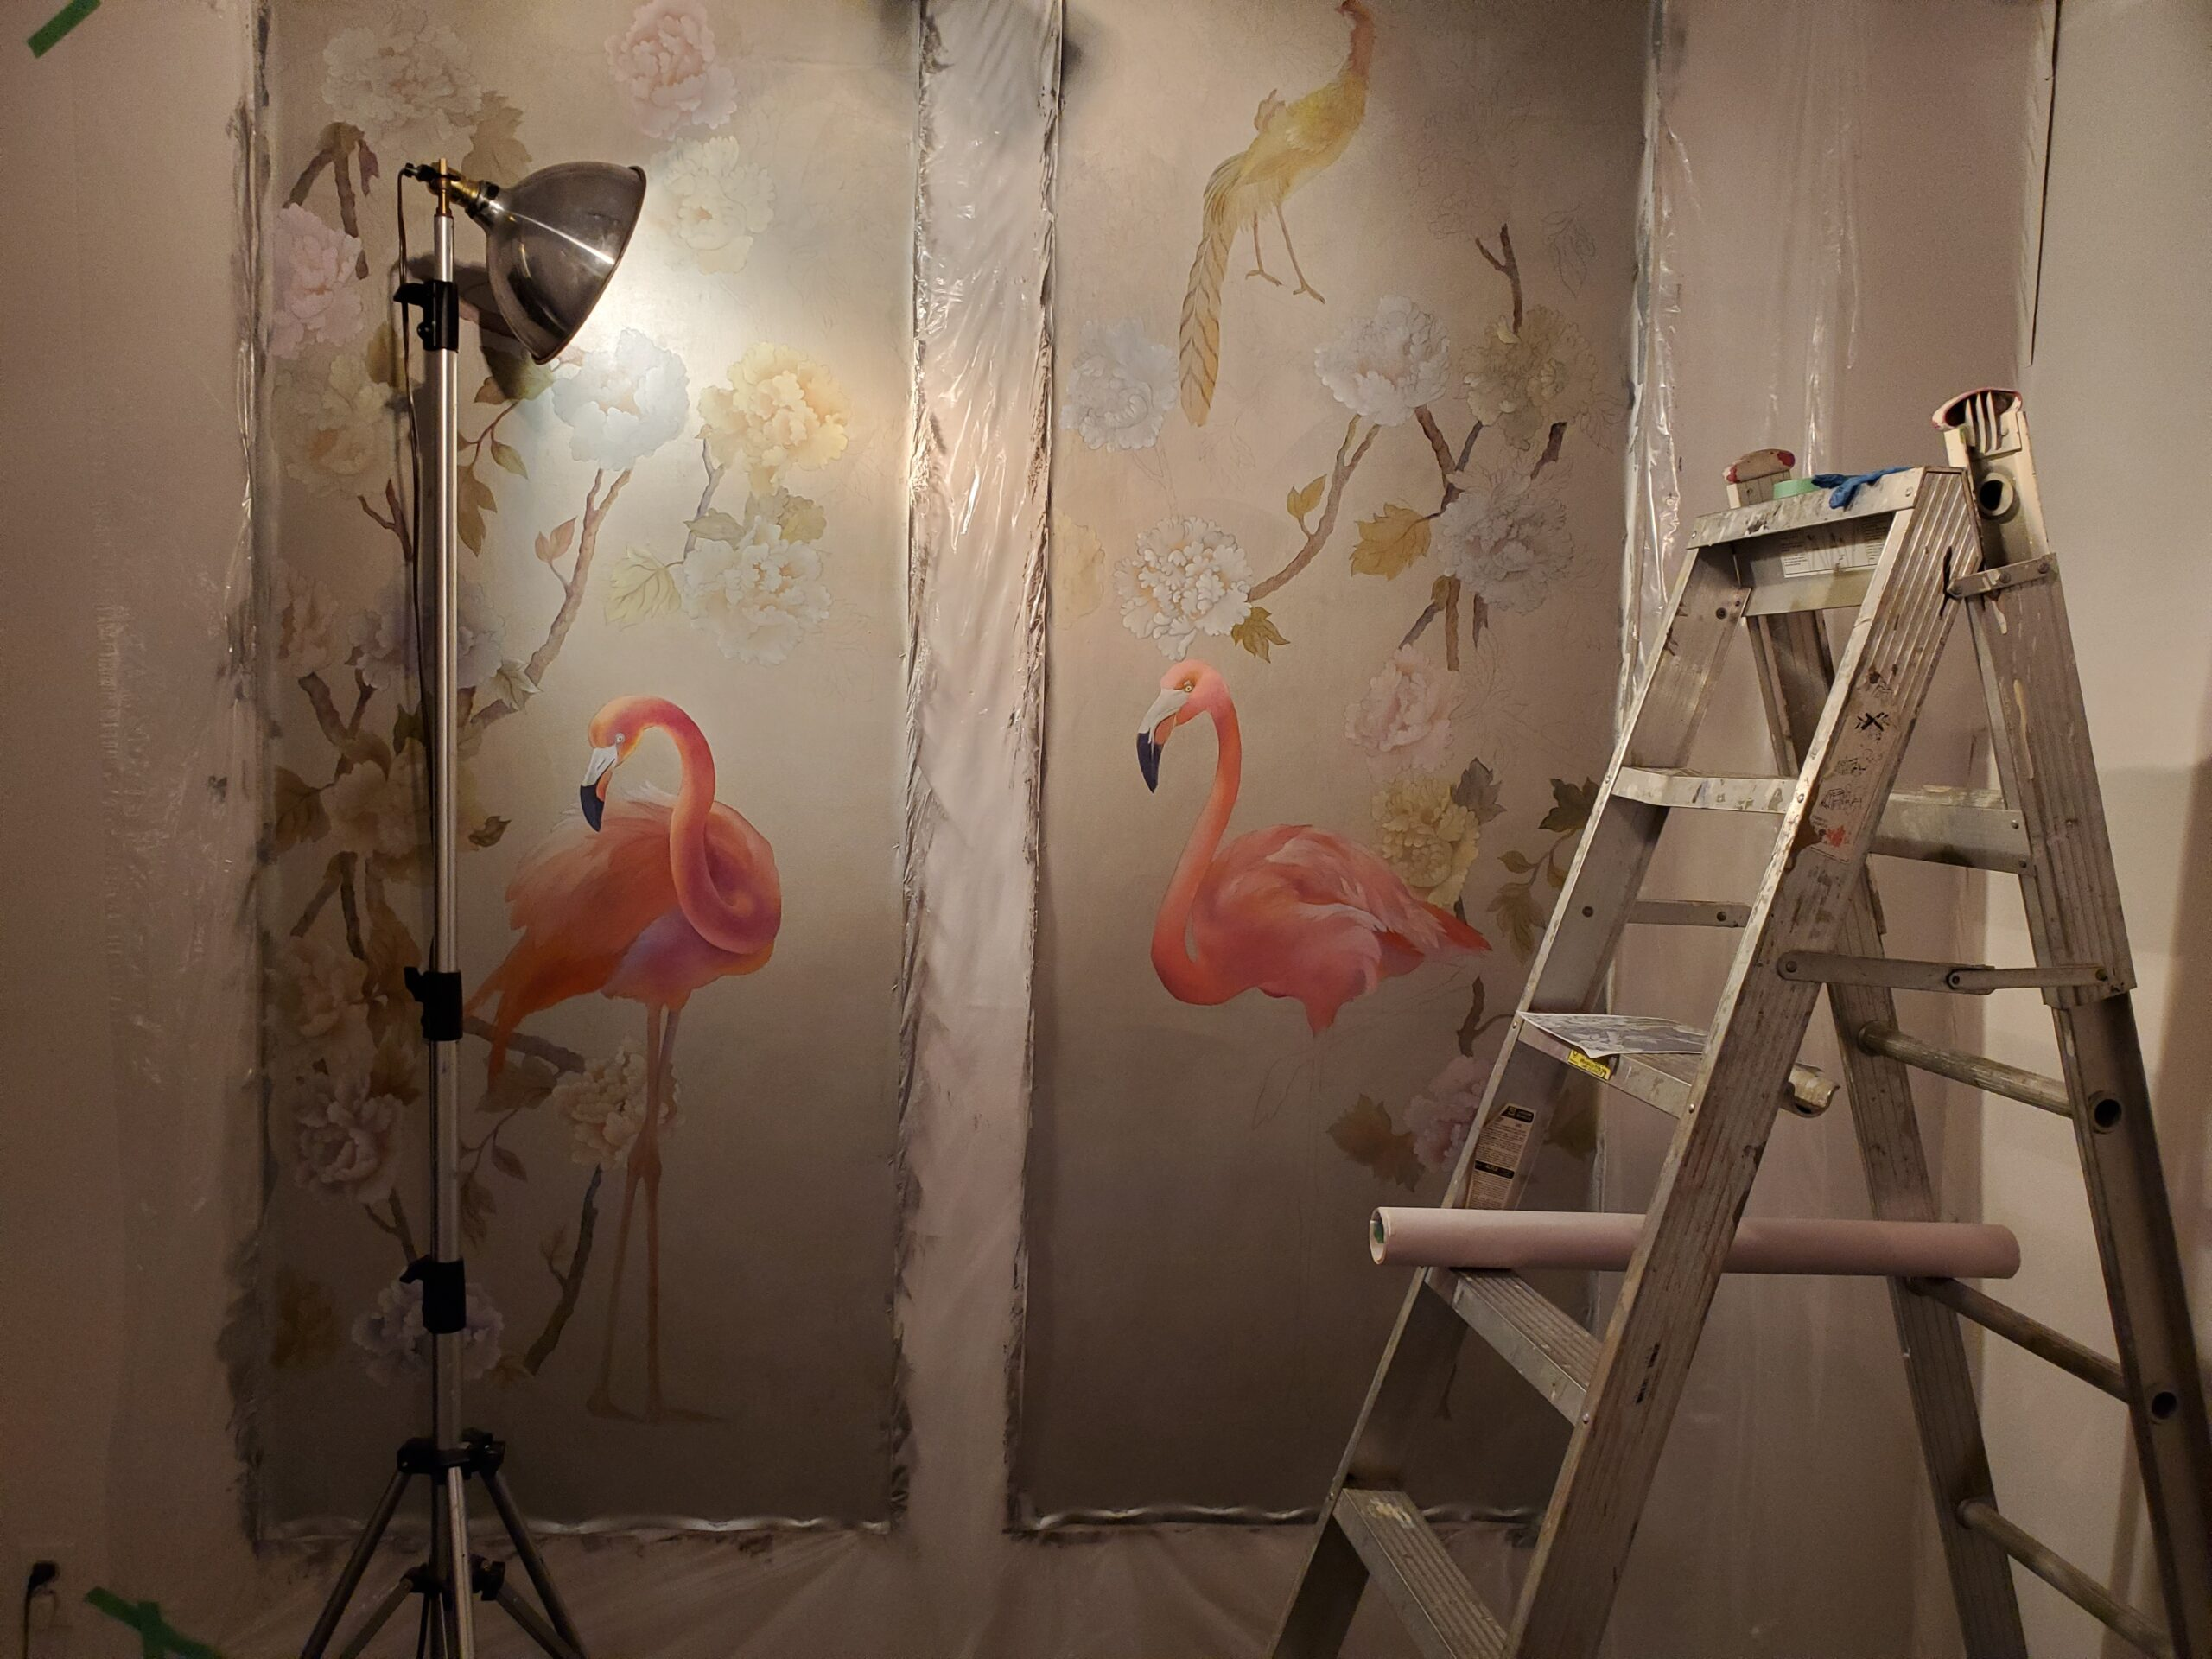 Vetrova paintings with ladder